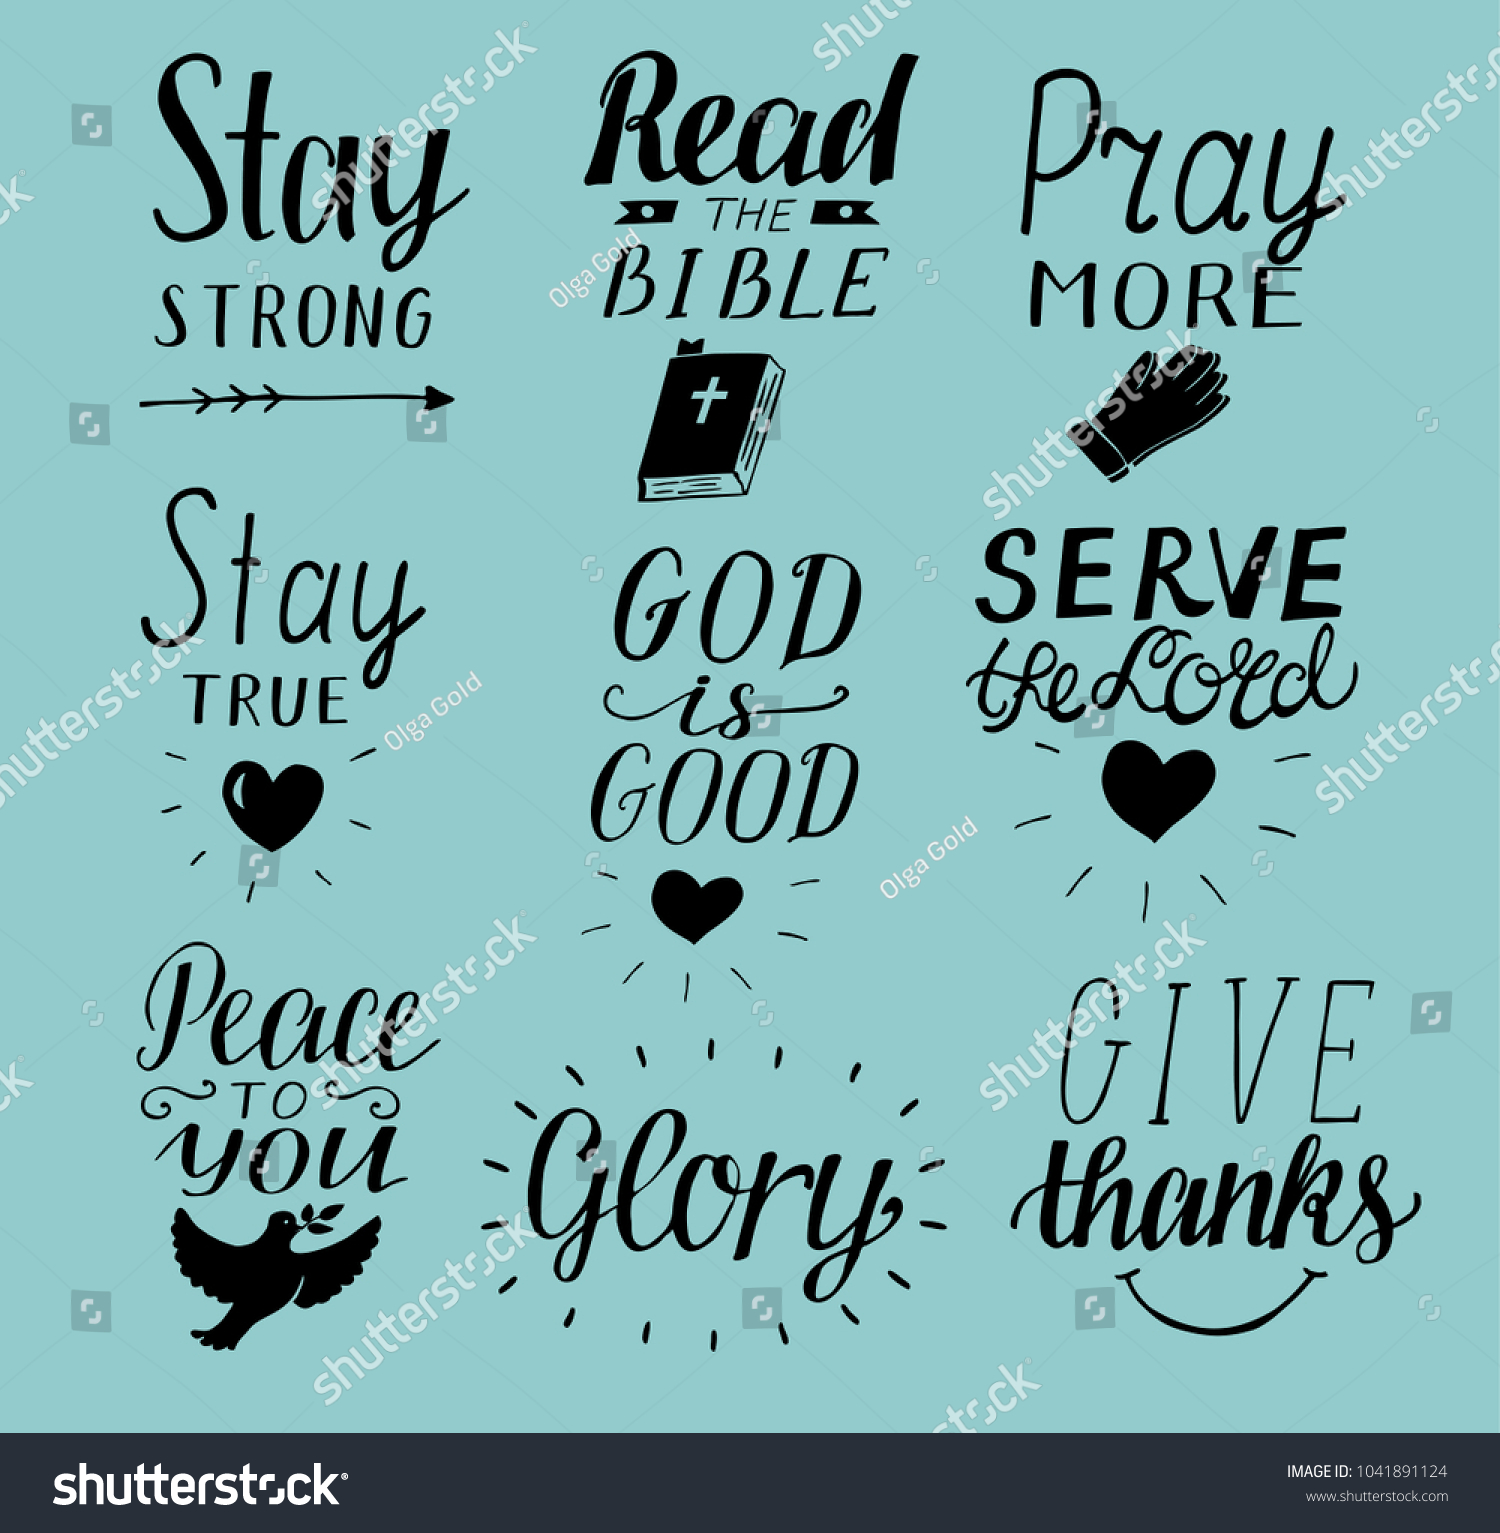 God Is Good Quotes | Set 9 Hand Lettering Christian Quotes Stock Vektorgrafik Lizenzfrei